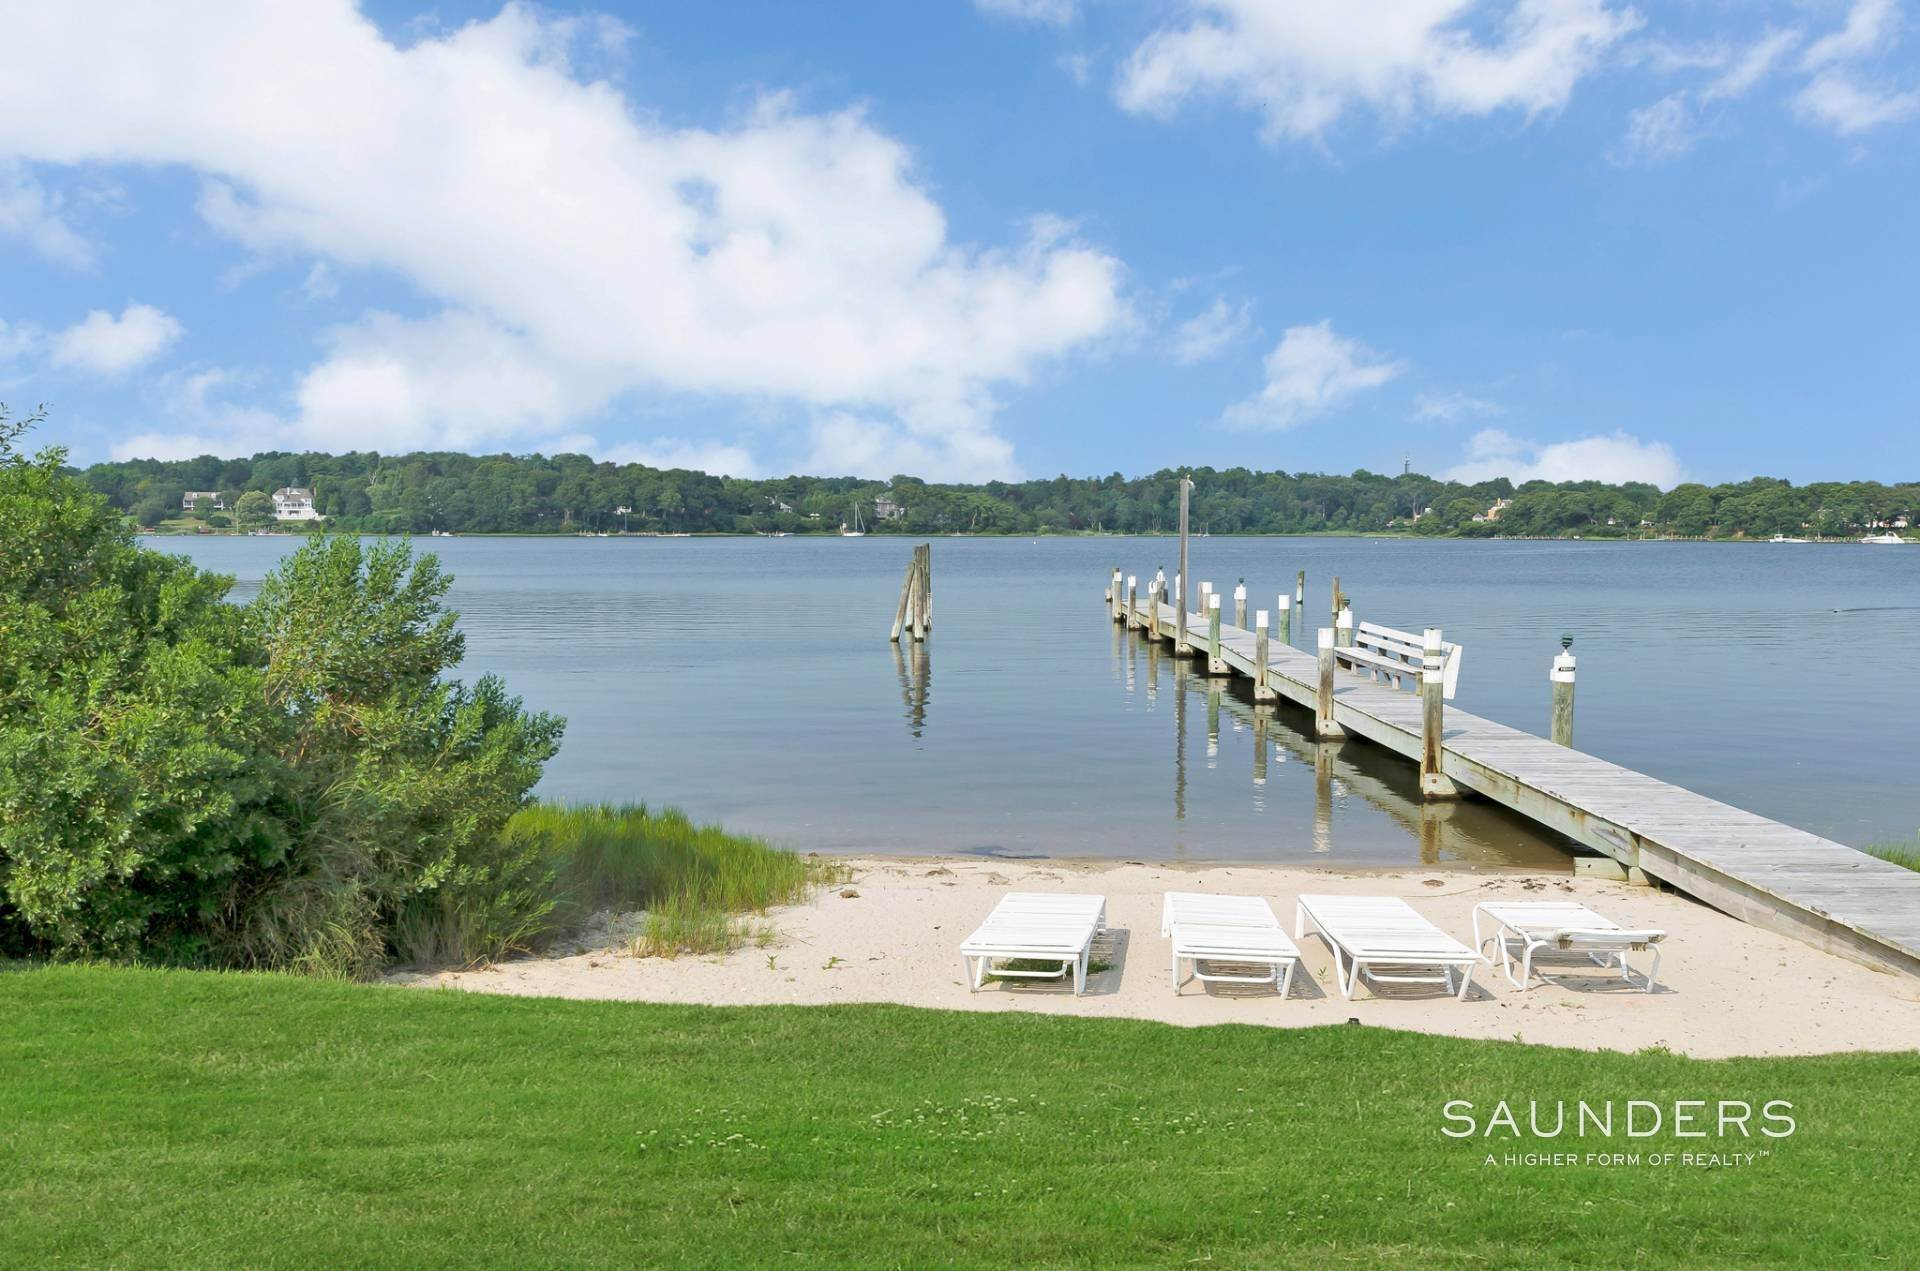 25. Single Family Homes for Sale at Estate Section Compound With Deep Water Dock, Sandy Beach, Pool 58 Westmoreland Drive, Shelter Island Heights, Shelter Island, NY 11964